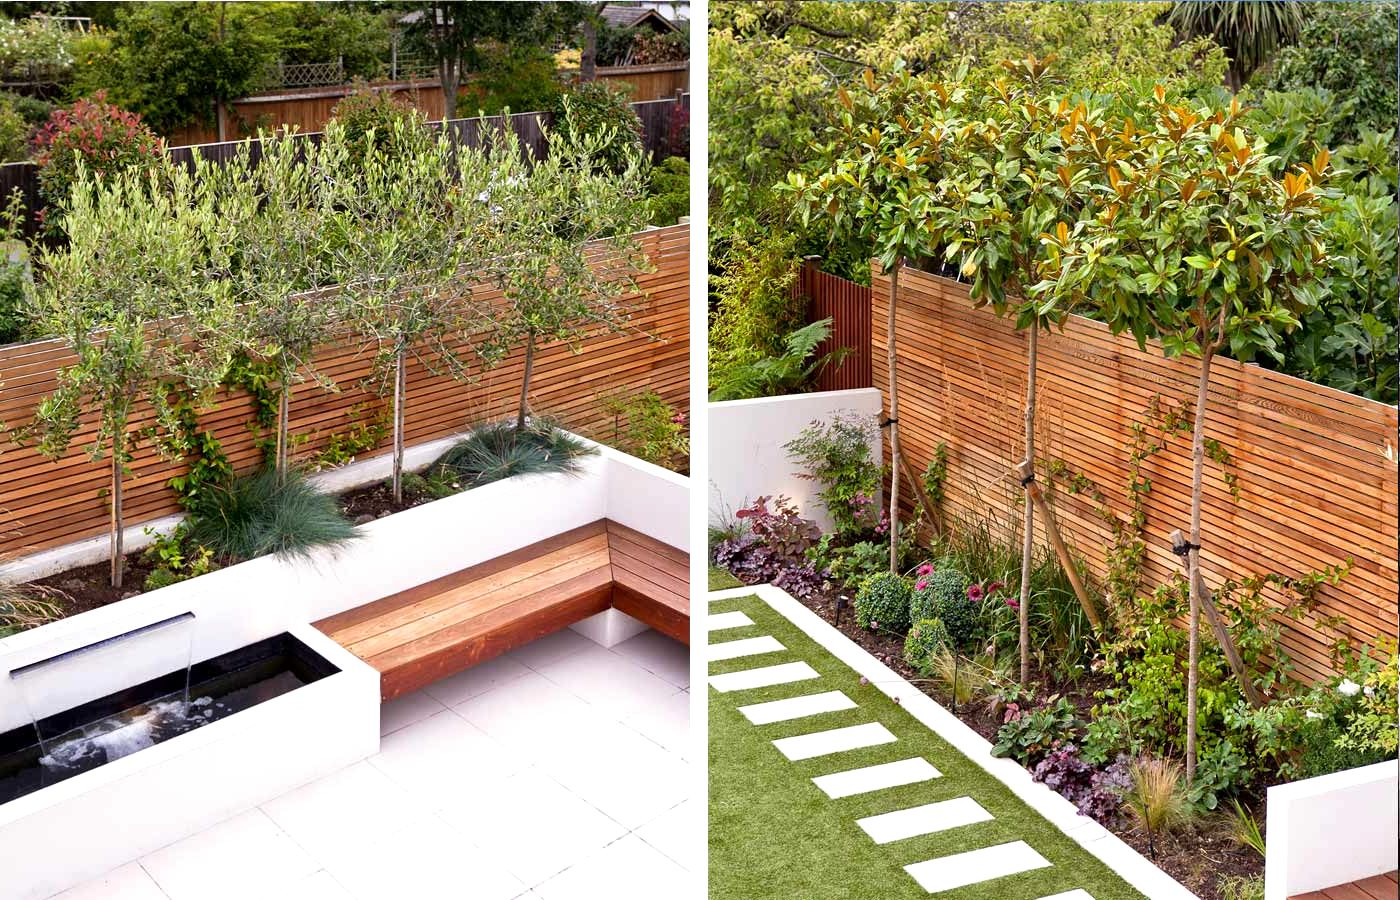 Garden design ideas long narrow gardens | Hawk Haven on Long Narrow Backyard Design Ideas id=20661